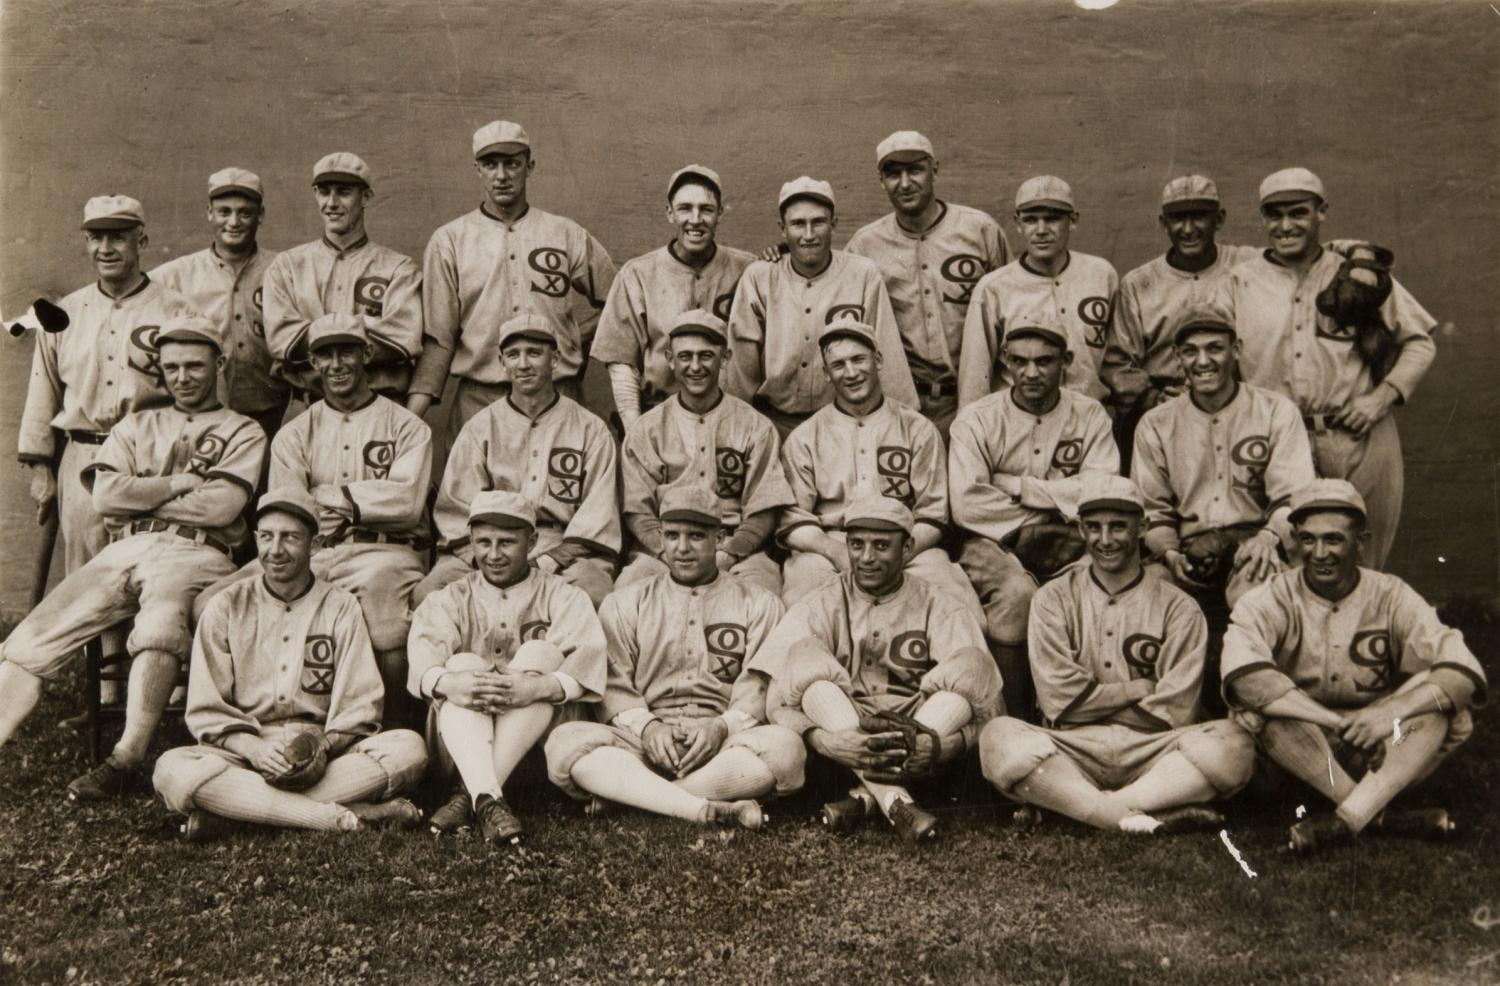 Smiling for a team picture during the 1919 MLB season, the Chicago White Sox had no clue what would be in store for them in the future. Of the twenty-three men pictured here, eight of them were banned from Major League Baseball for life!